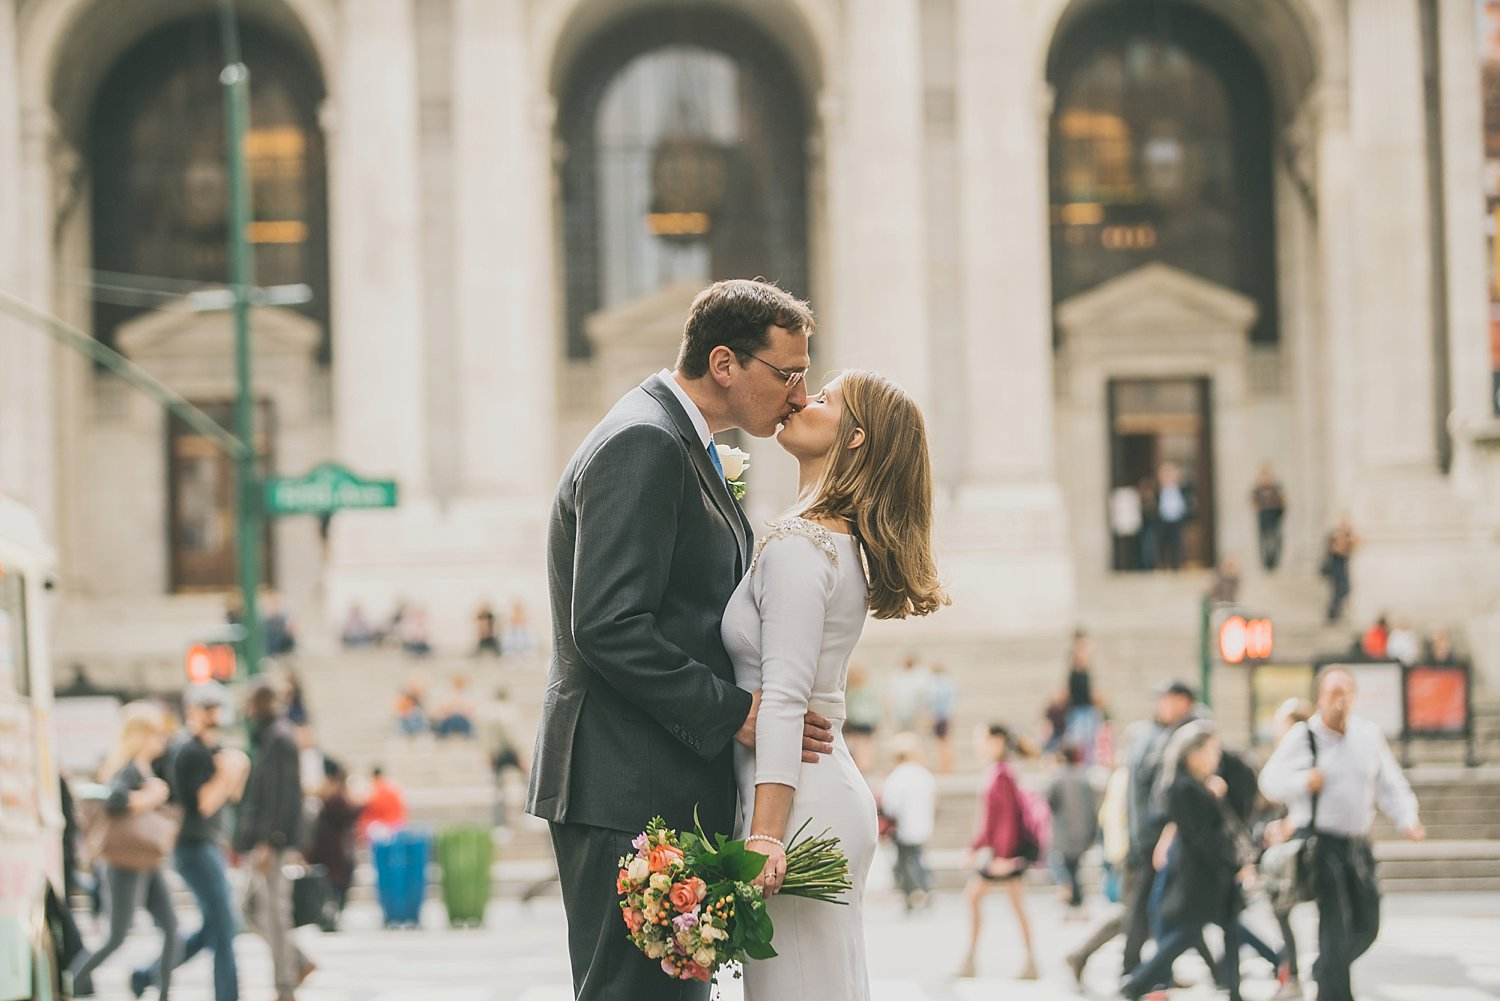 nyc-wedding-photography-nj-tri-state-cinematography-intothestory-by-moo-jae_0254.jpg